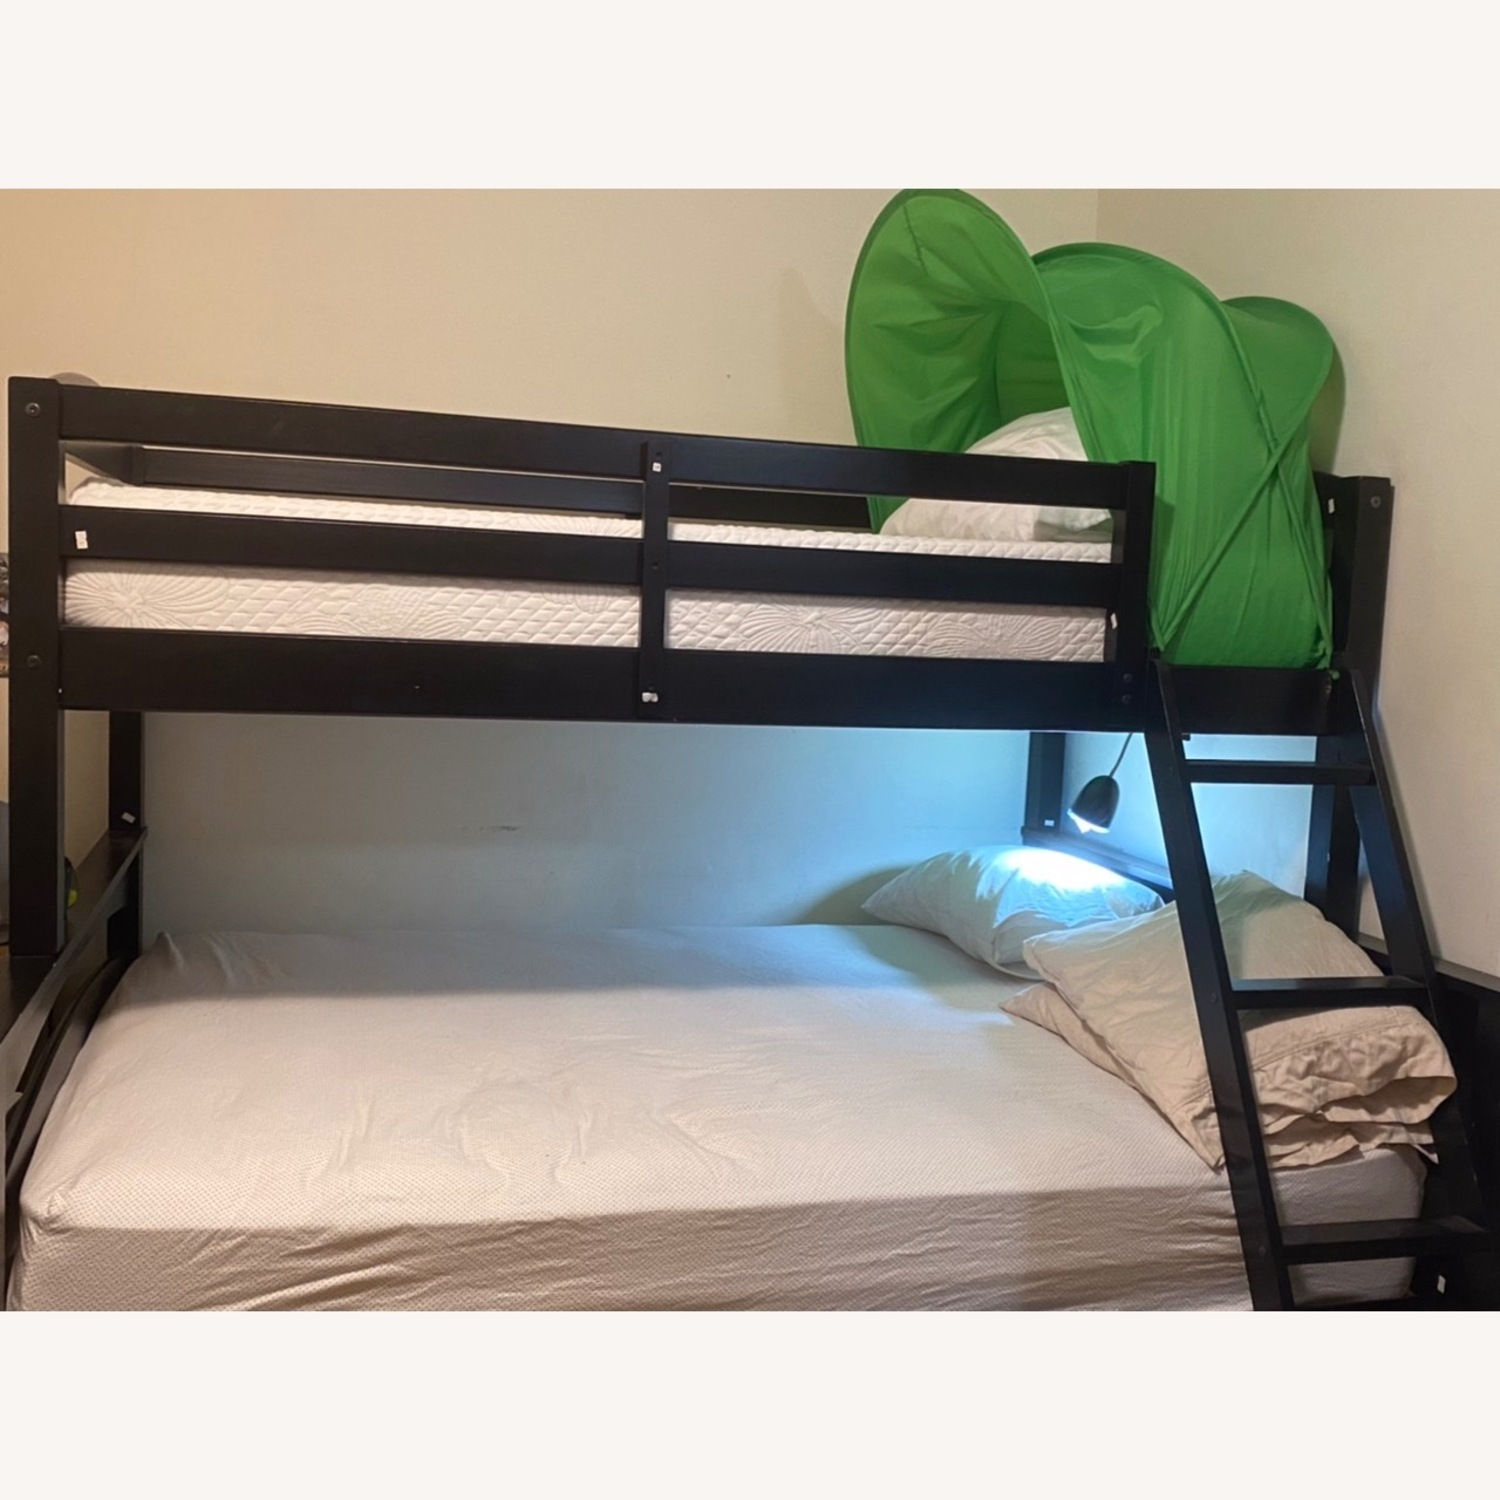 Dorel Home Products Bunk Bed - image-1